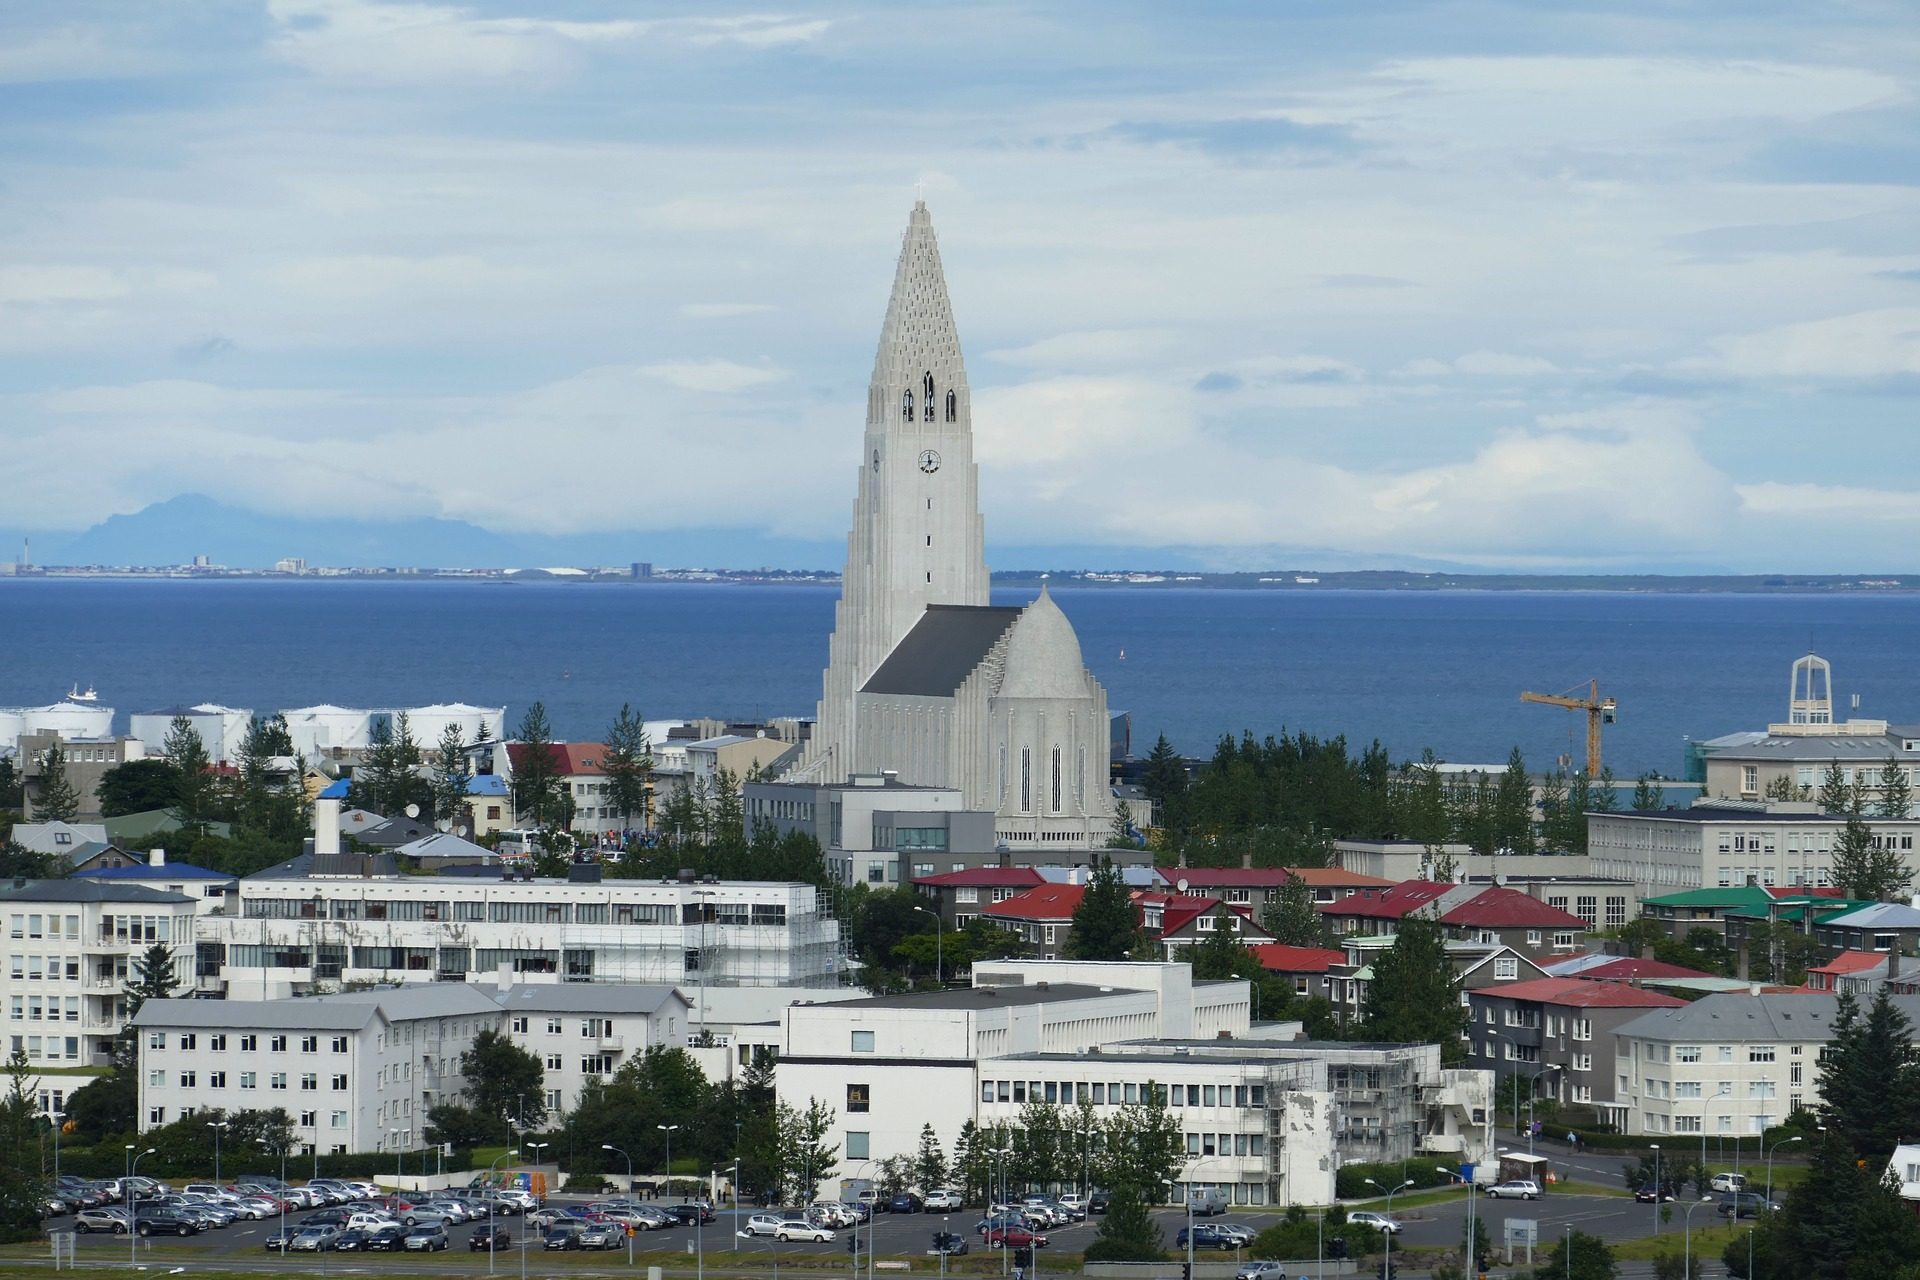 The Church of Hallgrimur (also known as Hallgrimskirkja), Iceland